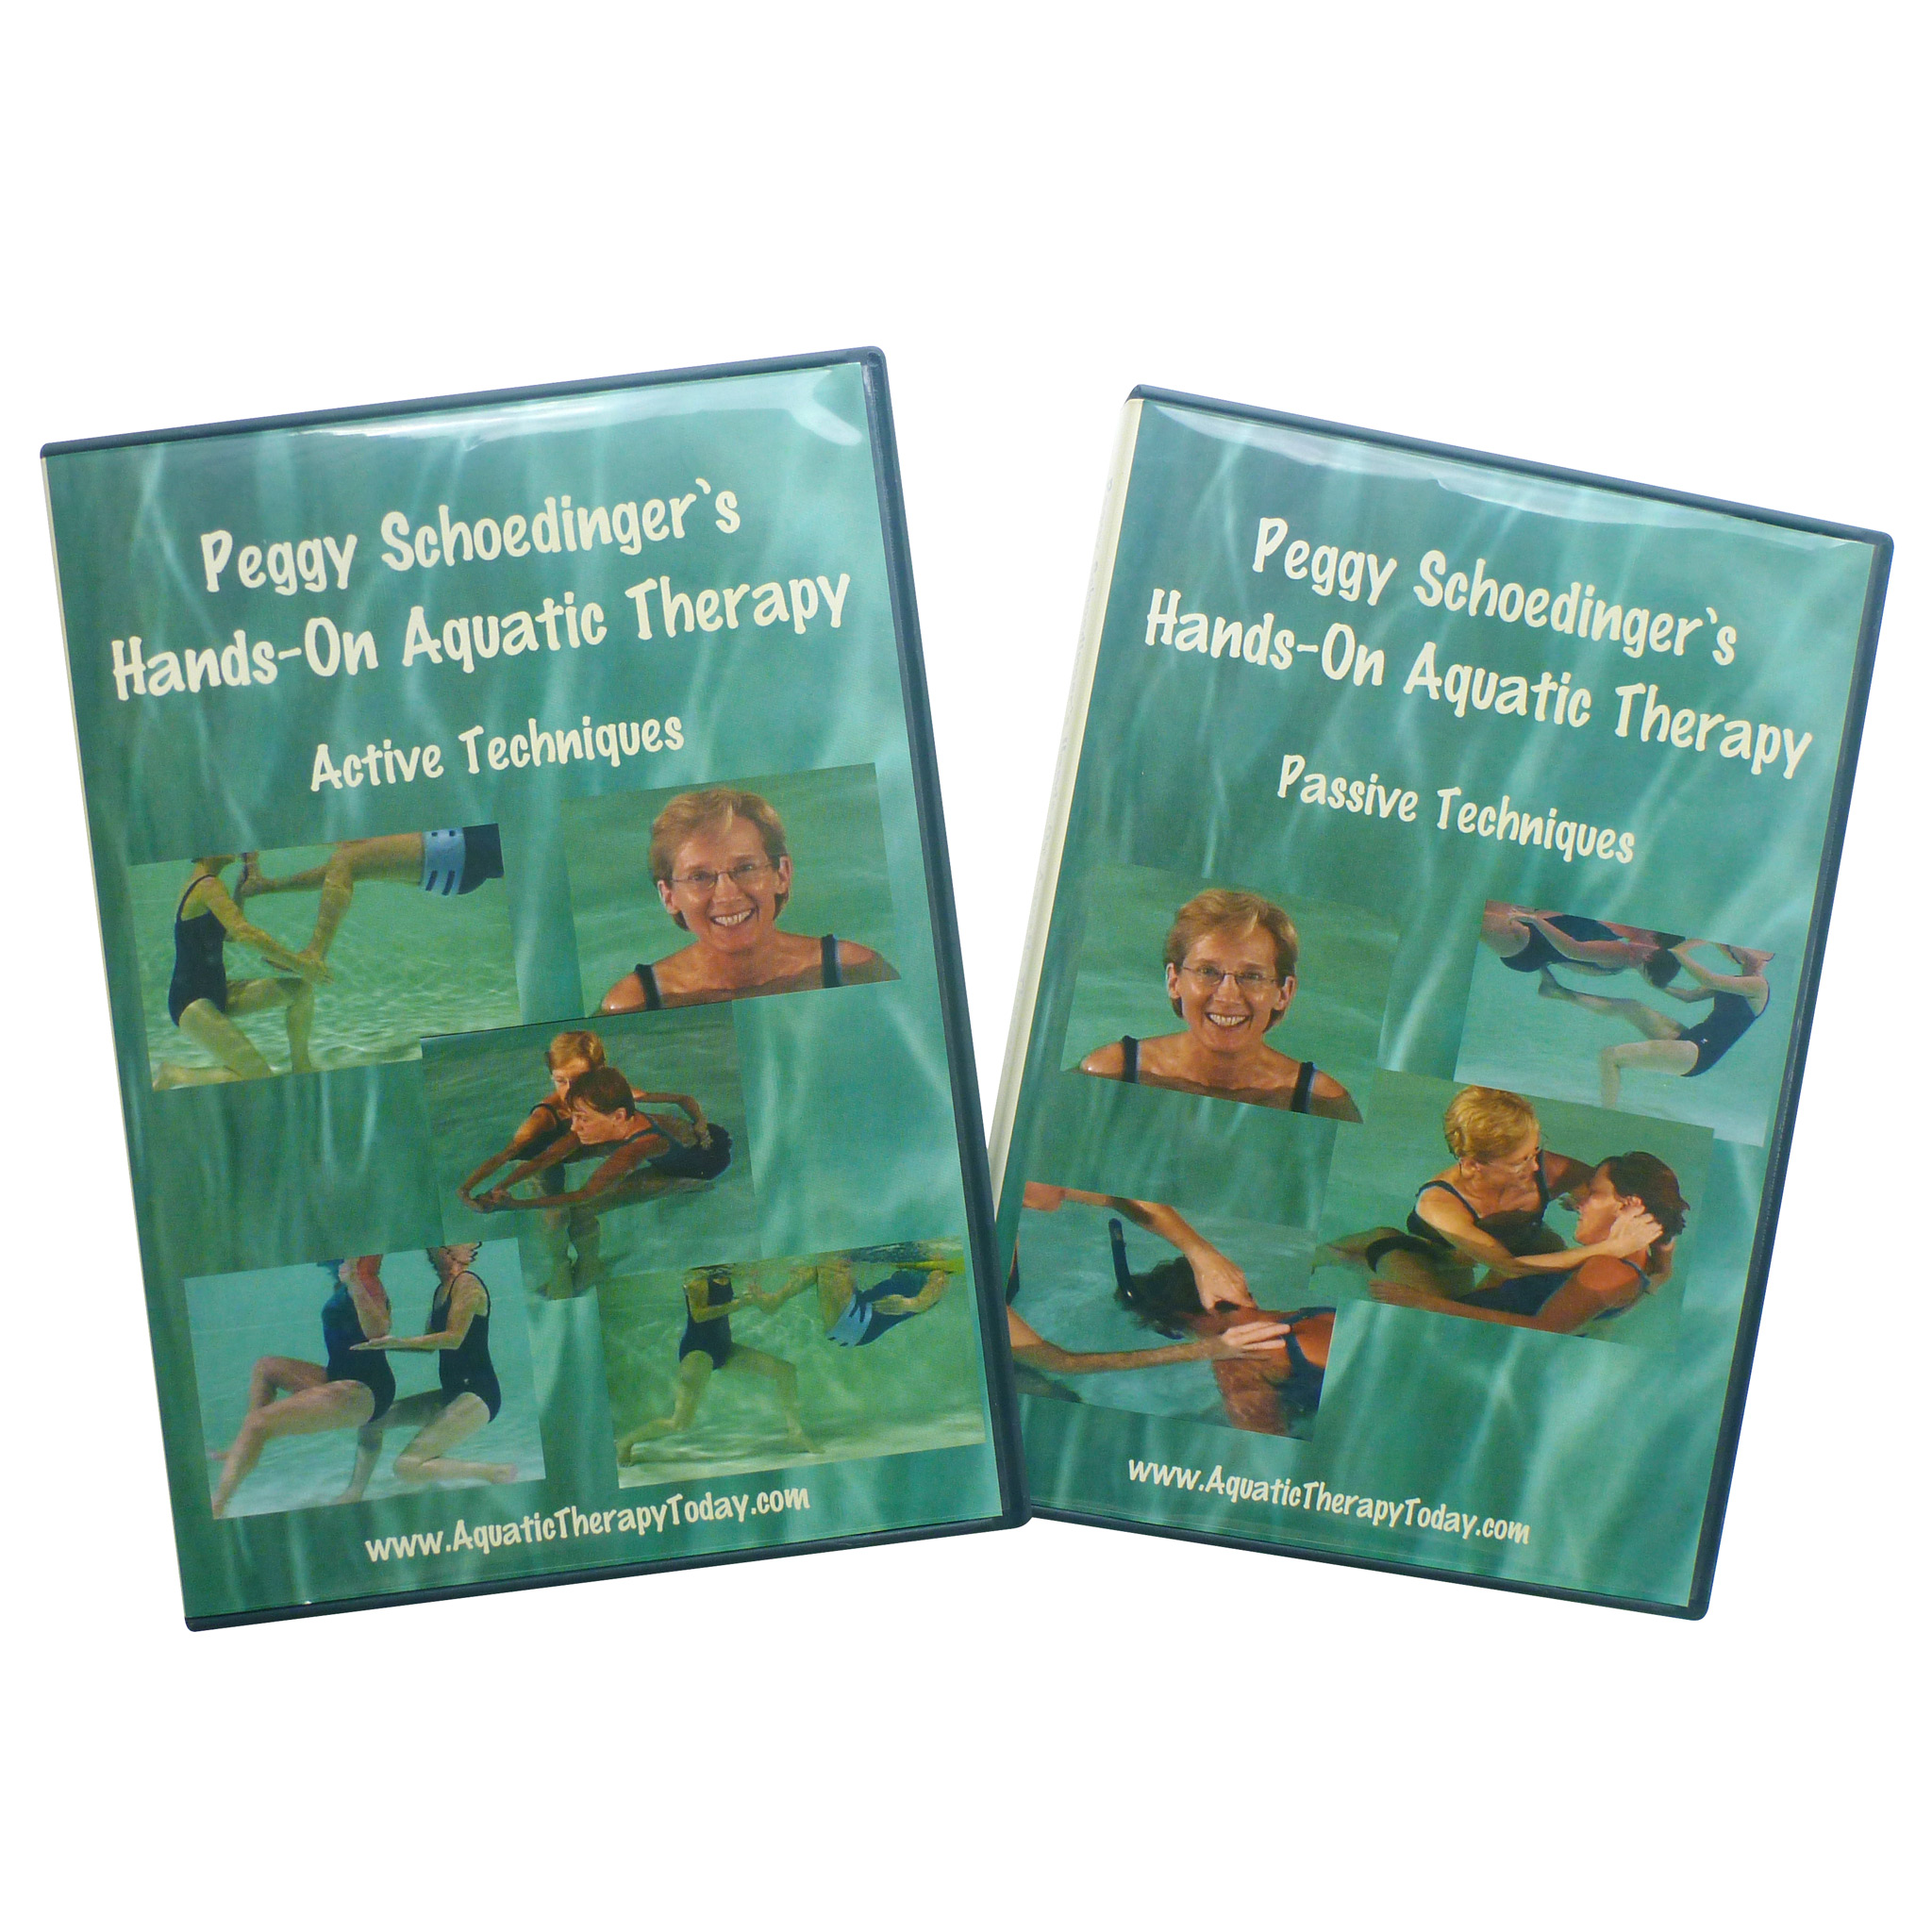 Peggy's 4 DVDs will enhance your skills